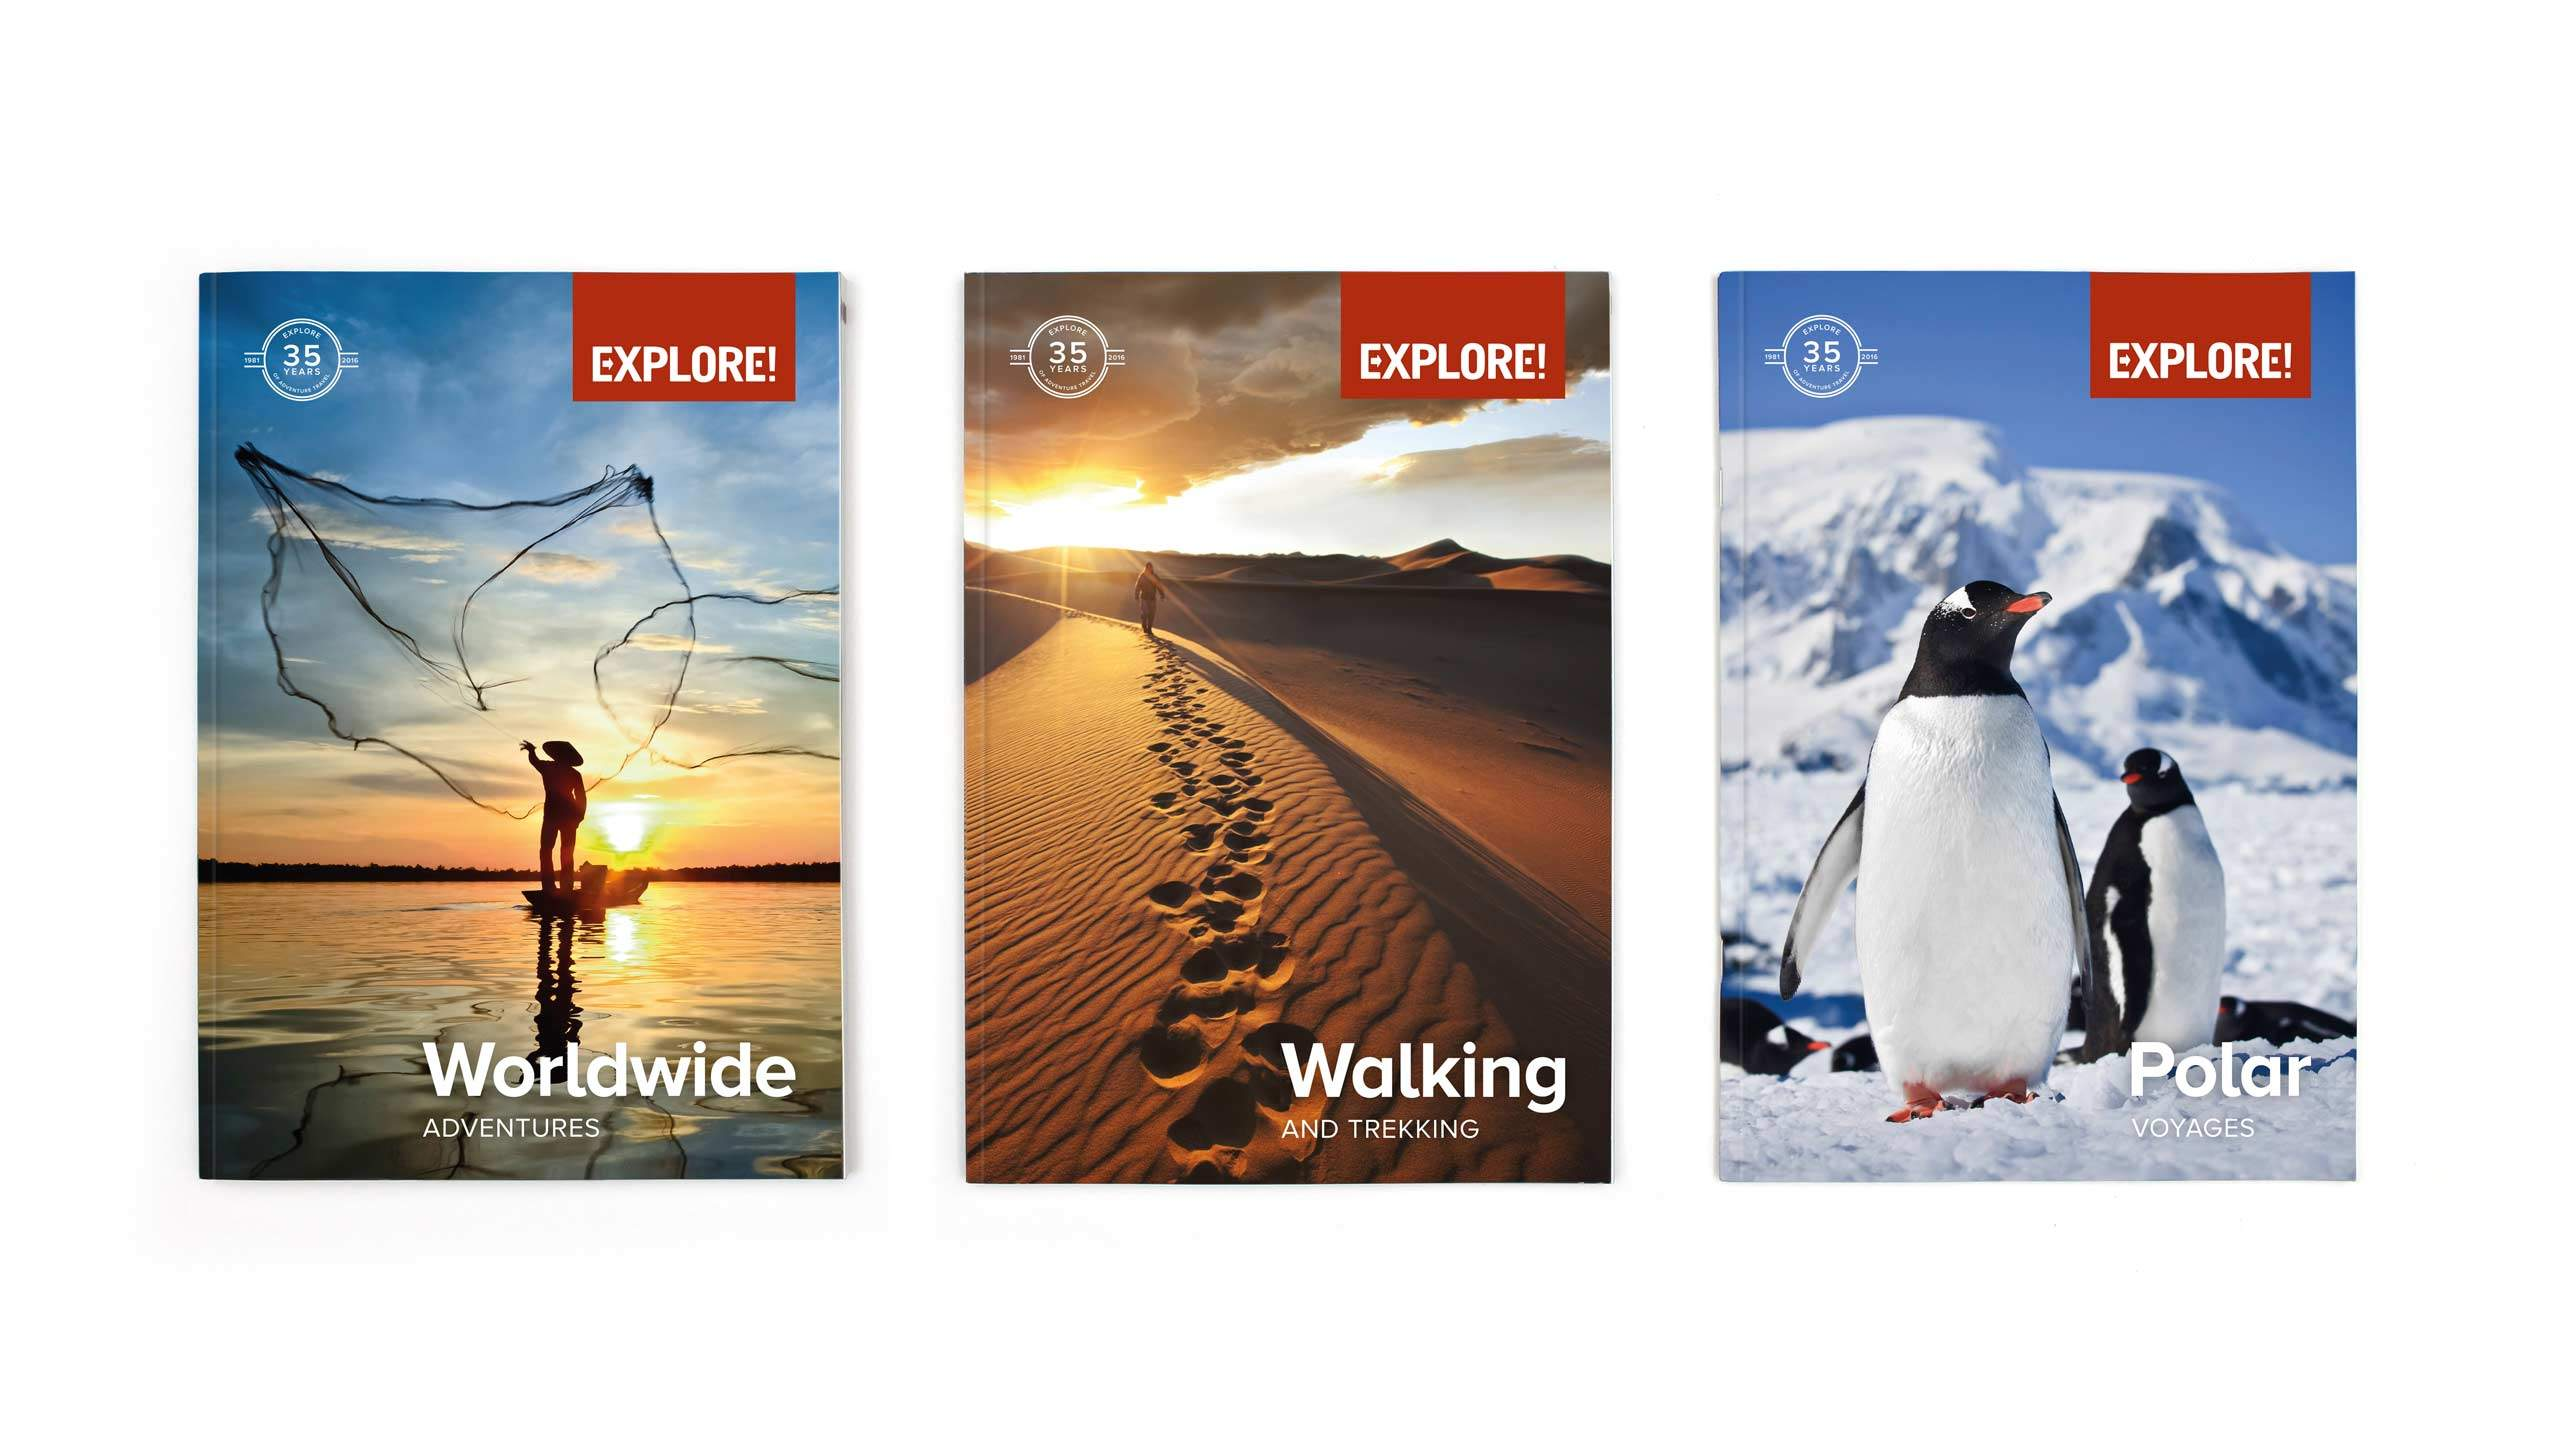 Explore brochure covers for brand refresh